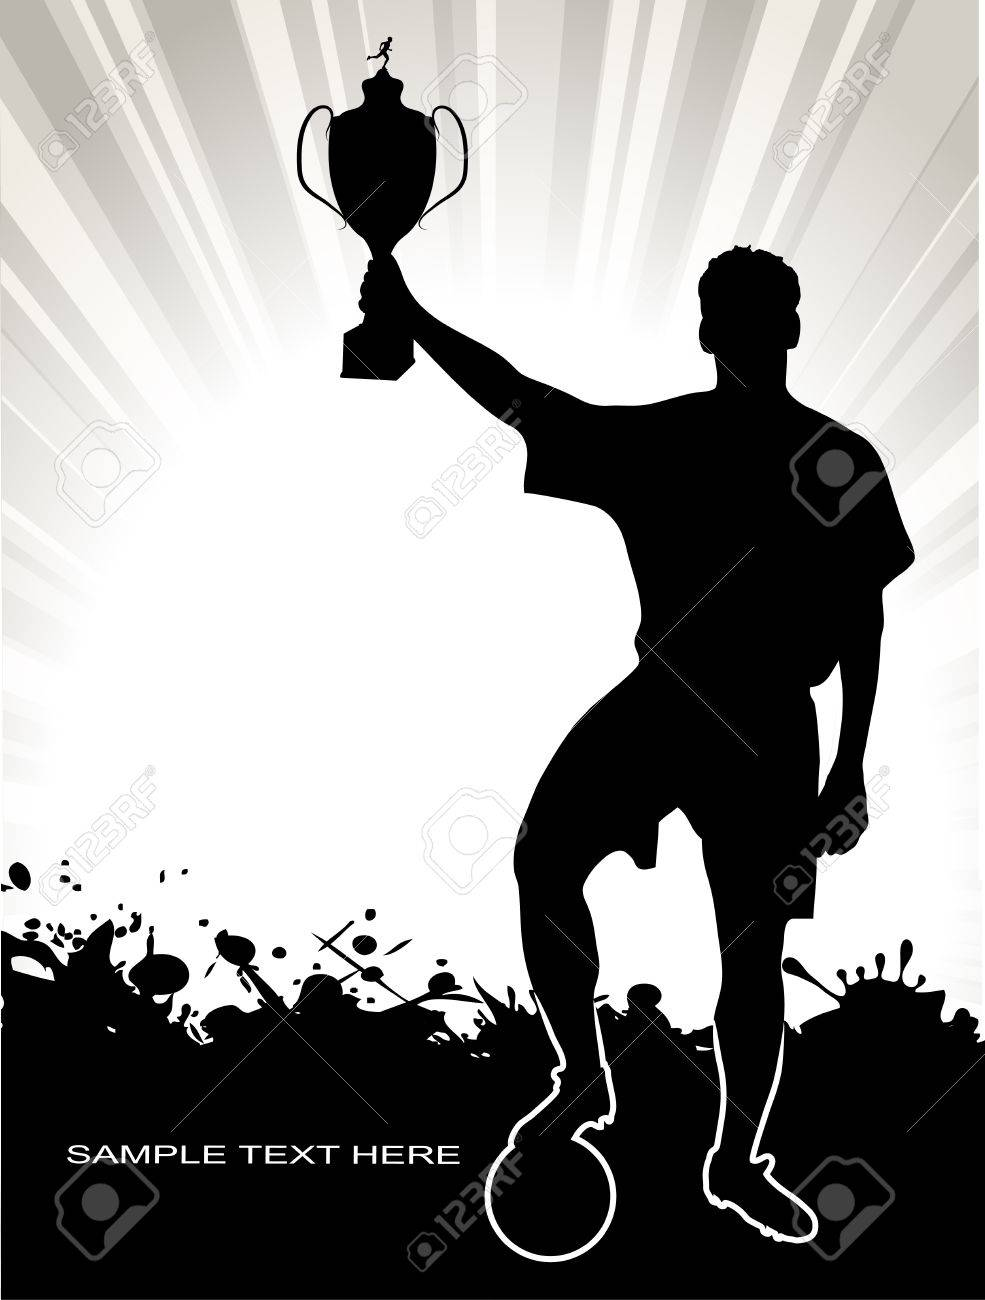 silhouette of the champion Stock Vector - 17857923